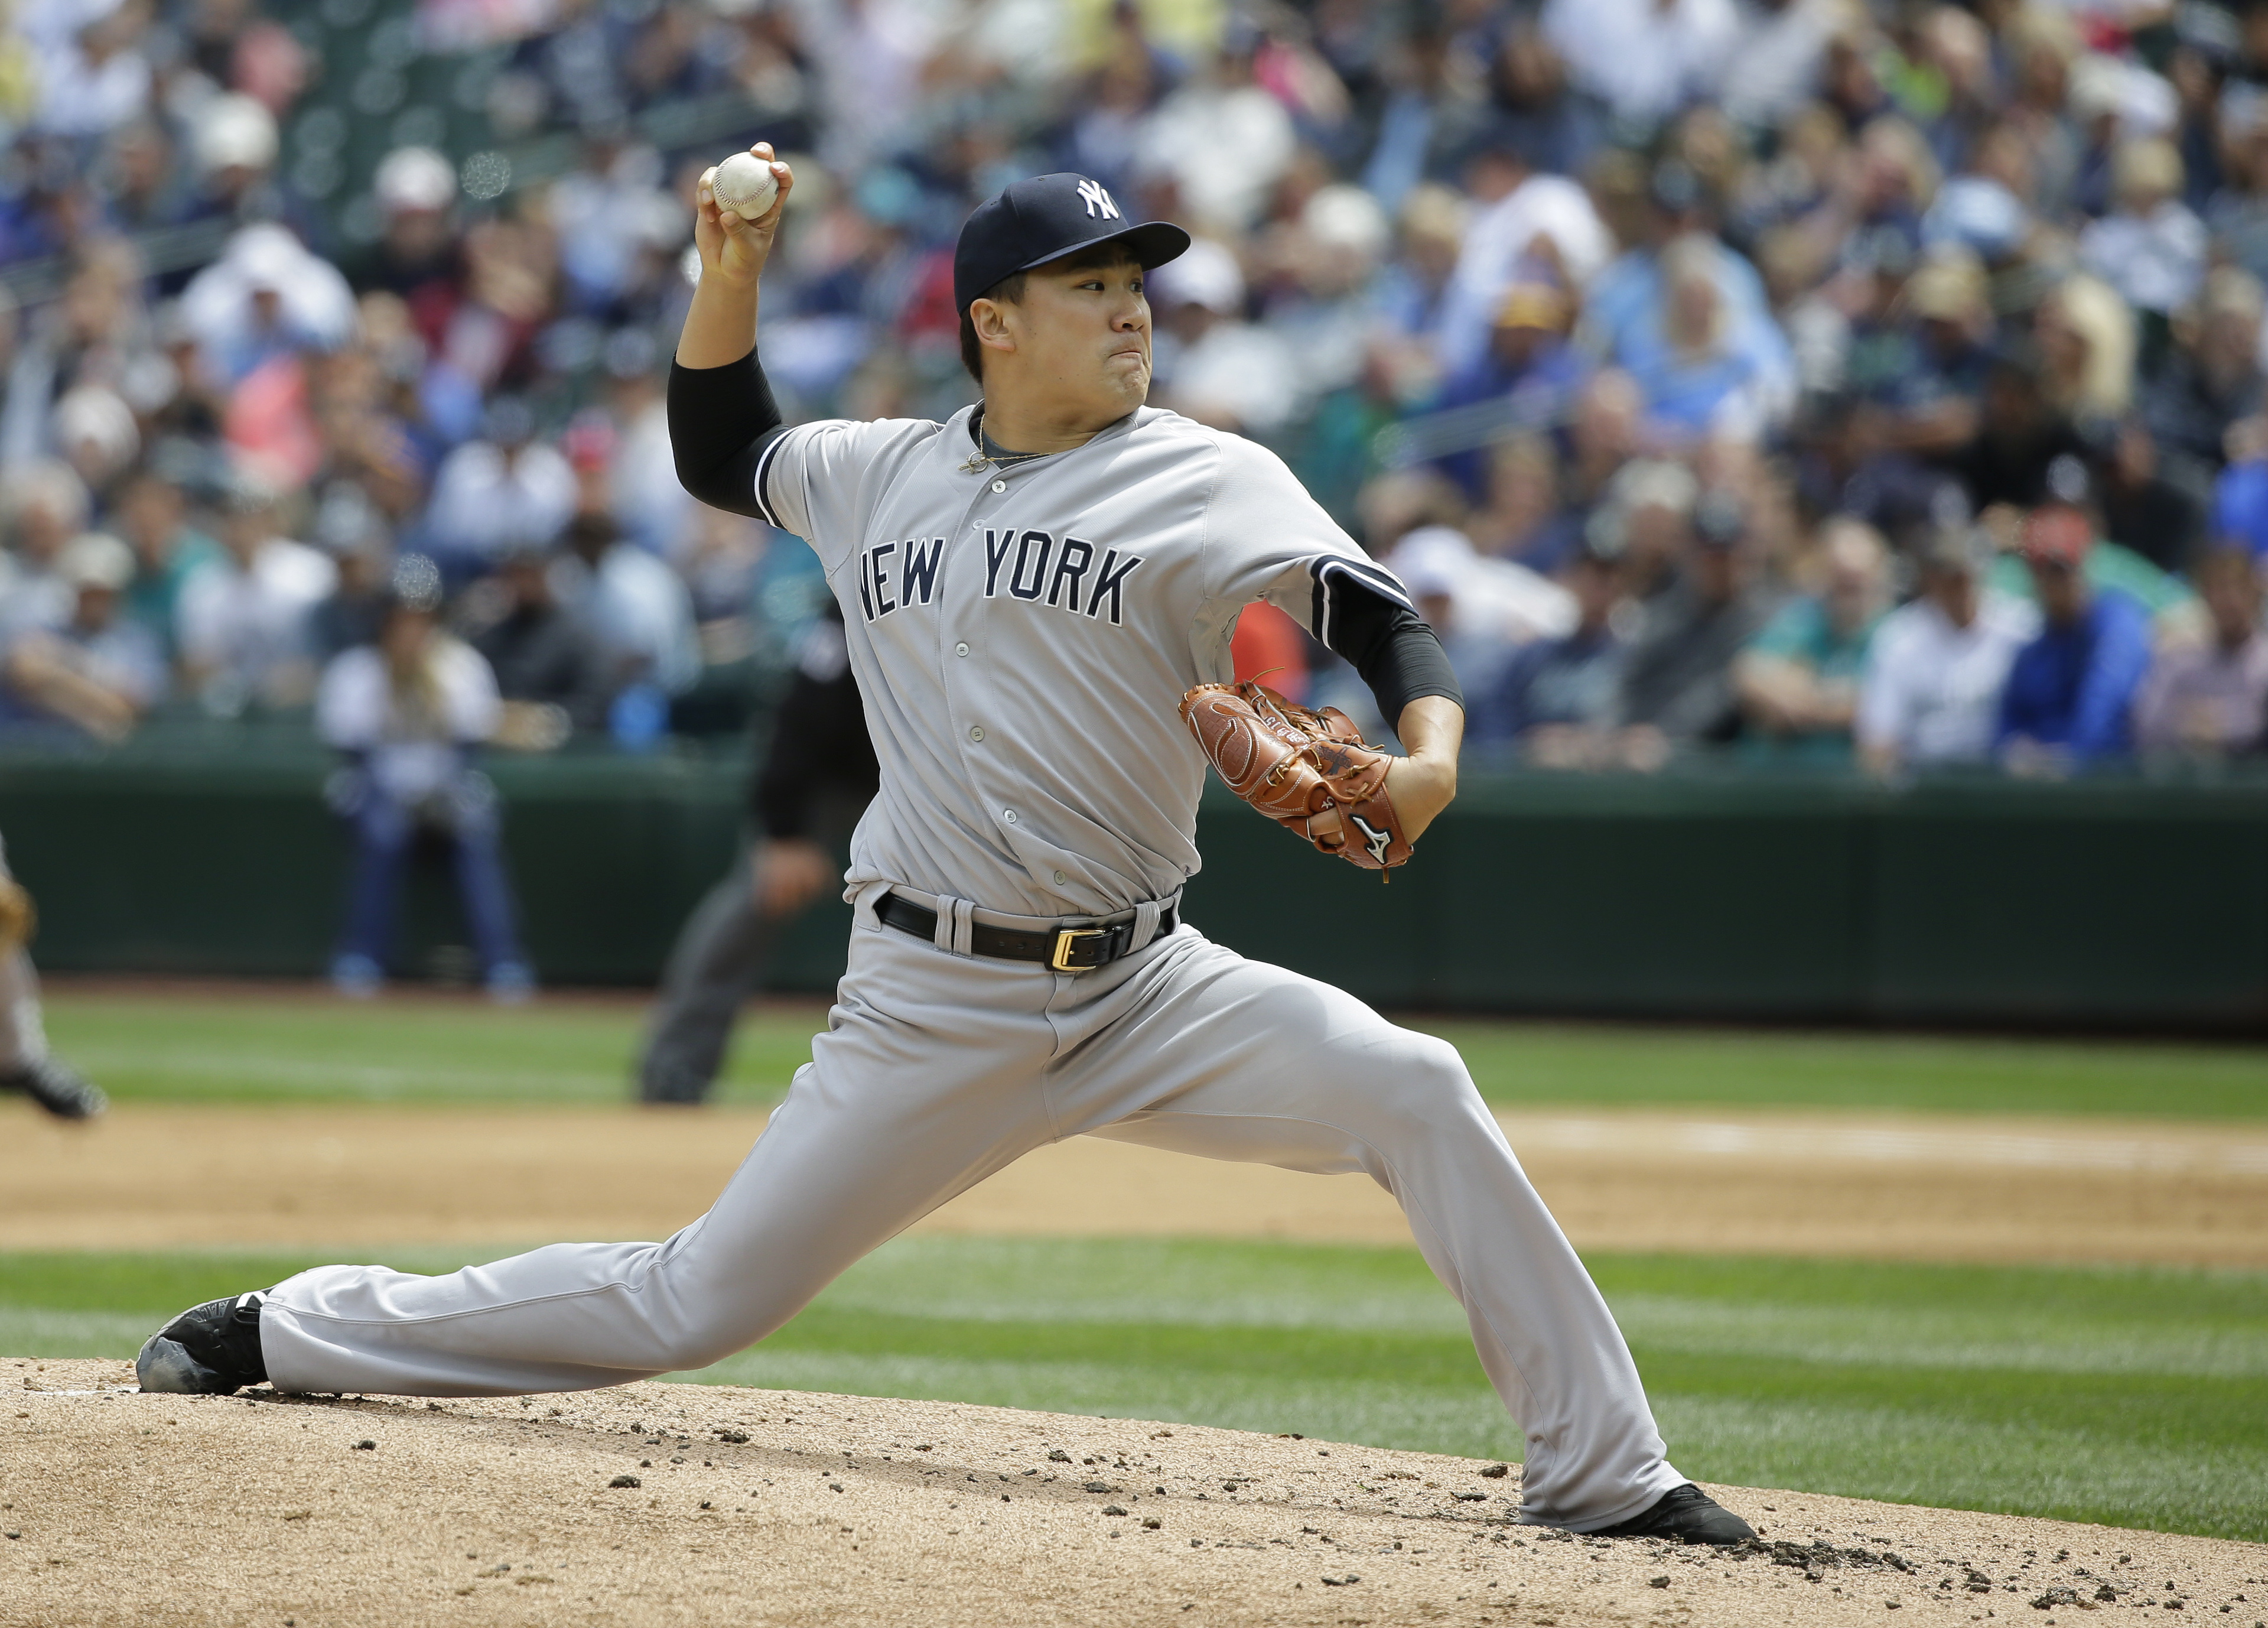 New York Yankees starting pitcher Masahiro Tanaka throws against the Seattle Mariners in the second inning of a baseball game, Wednesday, June 3, 2015, in Seattle. (AP Photo/Ted S. Warren)